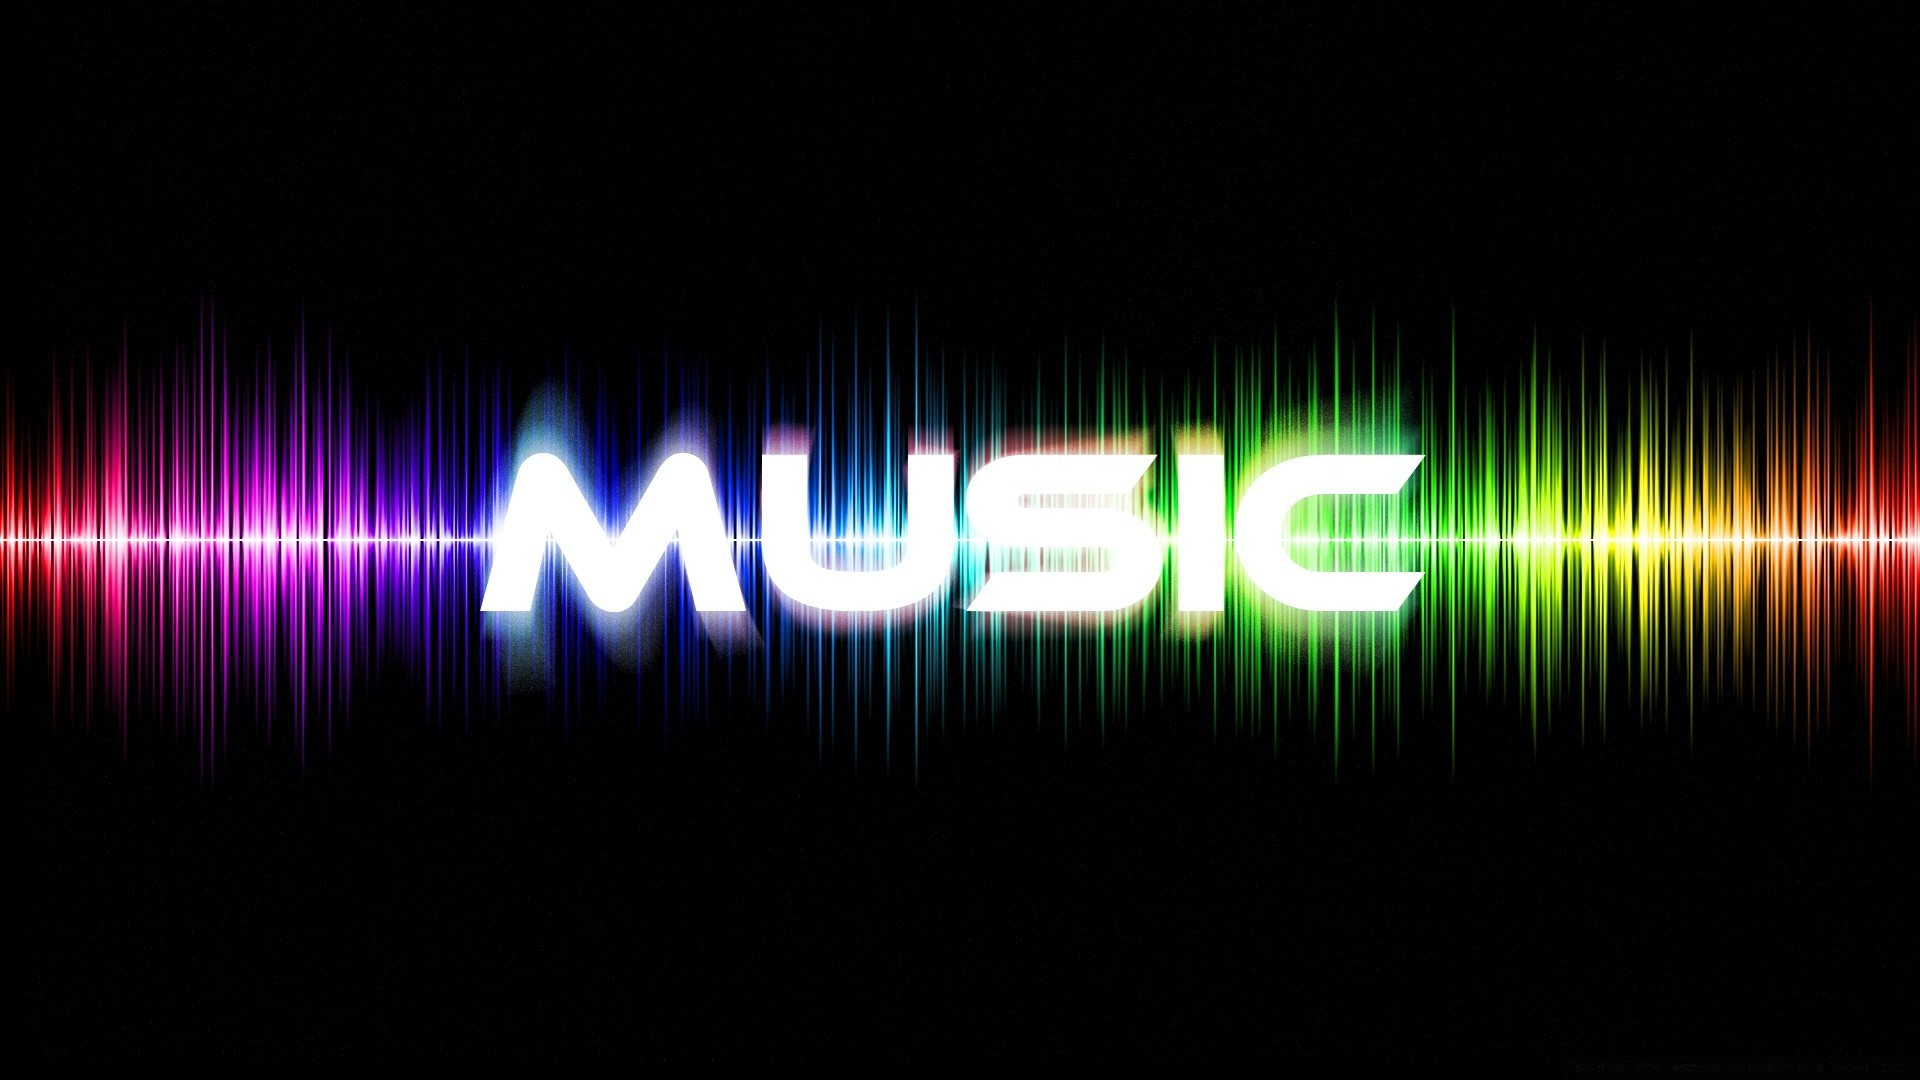 Best Wallpaper Music Frequency - 485828395532014  Collection_96772.jpg